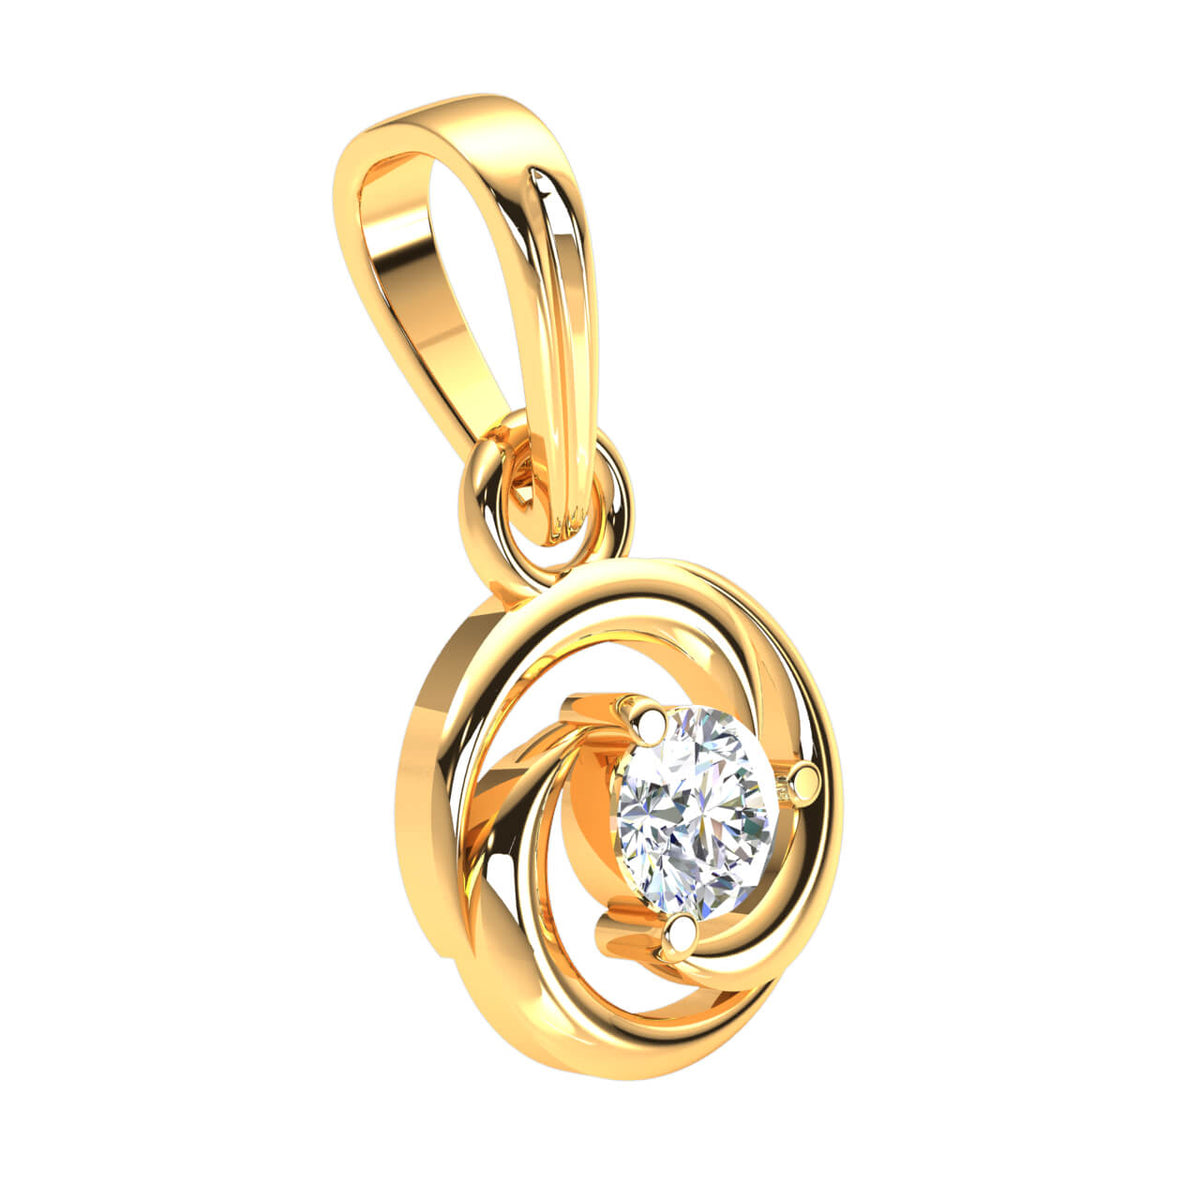 0.17 Ct Drop Round GH SI2 Diamond Women's Solitaire Pendant 14k Gold